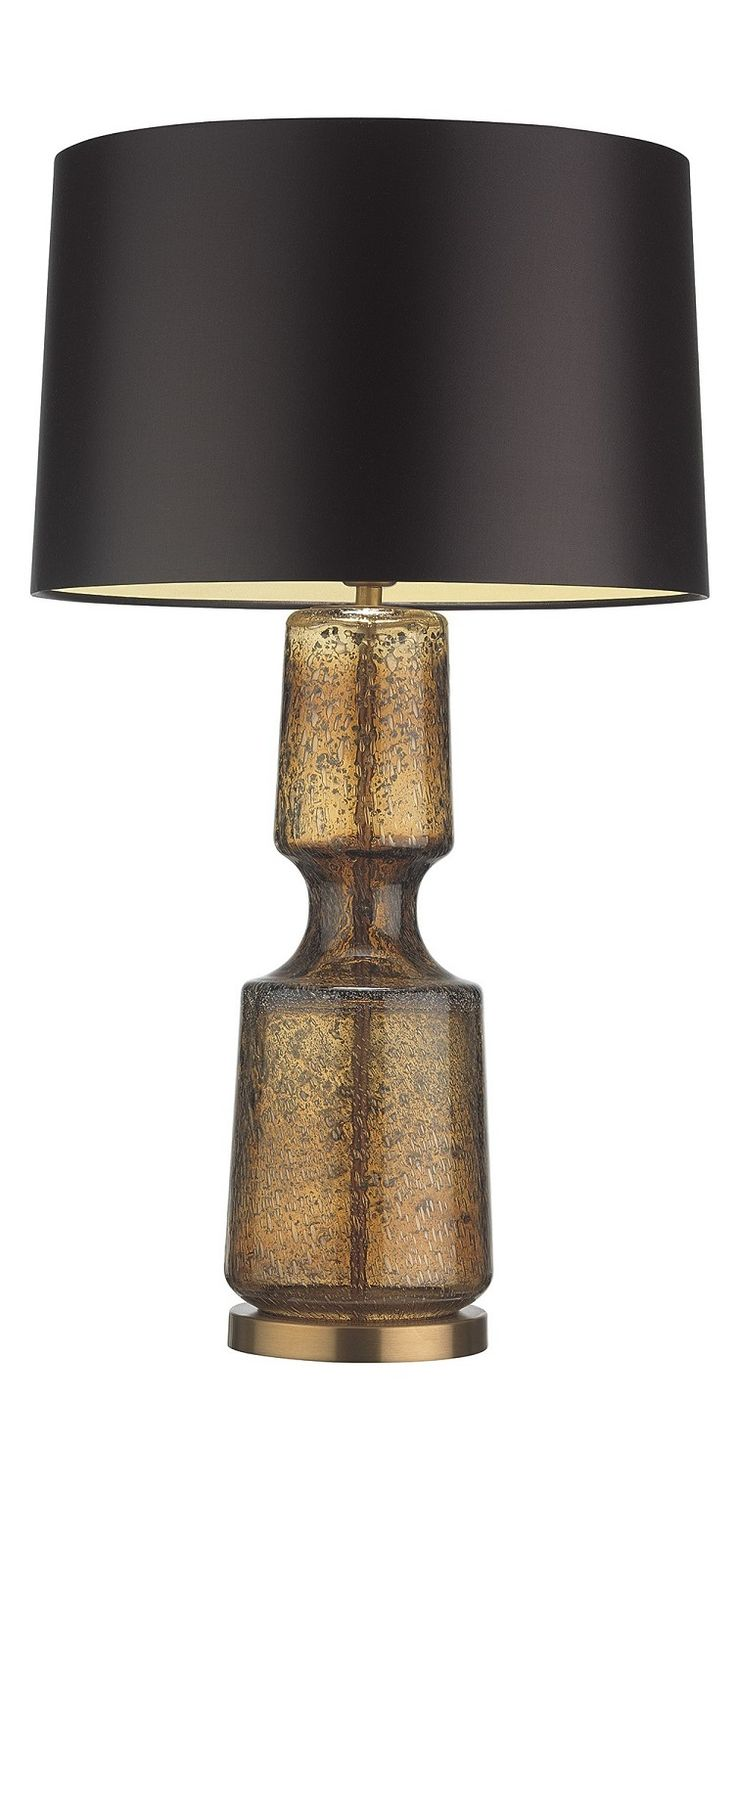 """""""Brown Lamp"""" """"Brown Lamps"""" """"Lamps Brown"""" """"Lamp Brown"""" Designs By www.InStyle-Decor.com HOLLYWOOD Over 5,000 Inspirations Now Online, Luxury Furniture, Mirrors, Lighting, Chandeliers, Lamps, Decorative Accessories & Gifts. Professional Interior Design Solutions For Interior Architects, Interior Specifiers, Interior Designers, Interior Decorators, Hospitality, Commercial, Maritime & Residential. Beverly Hills New York London Barcelona Over 10 Years Worldwide Shipping Experience"""